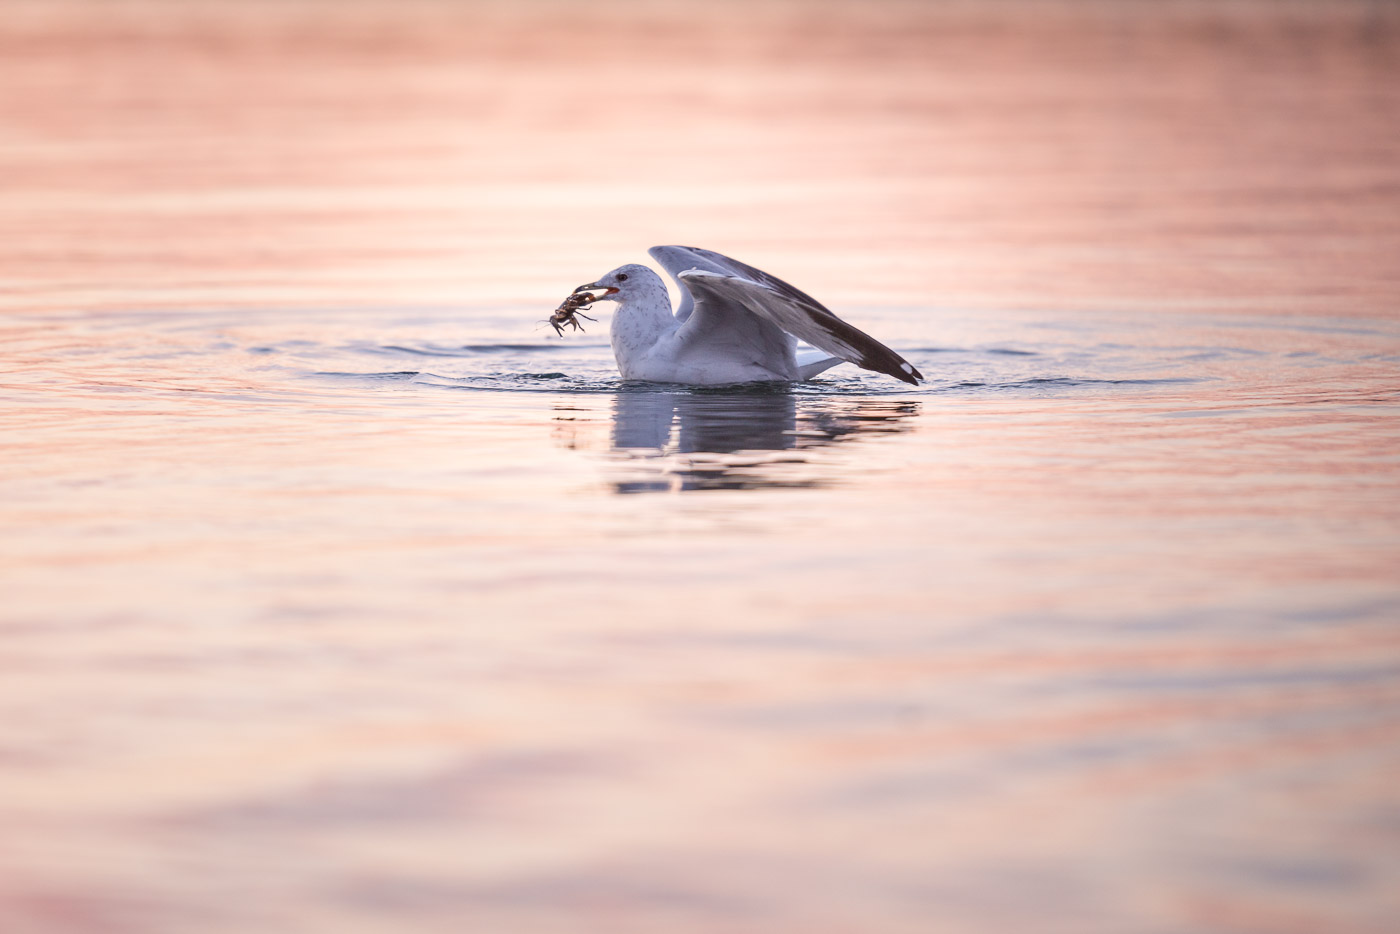 A seagull catches a crayfish from Lake Ontario.